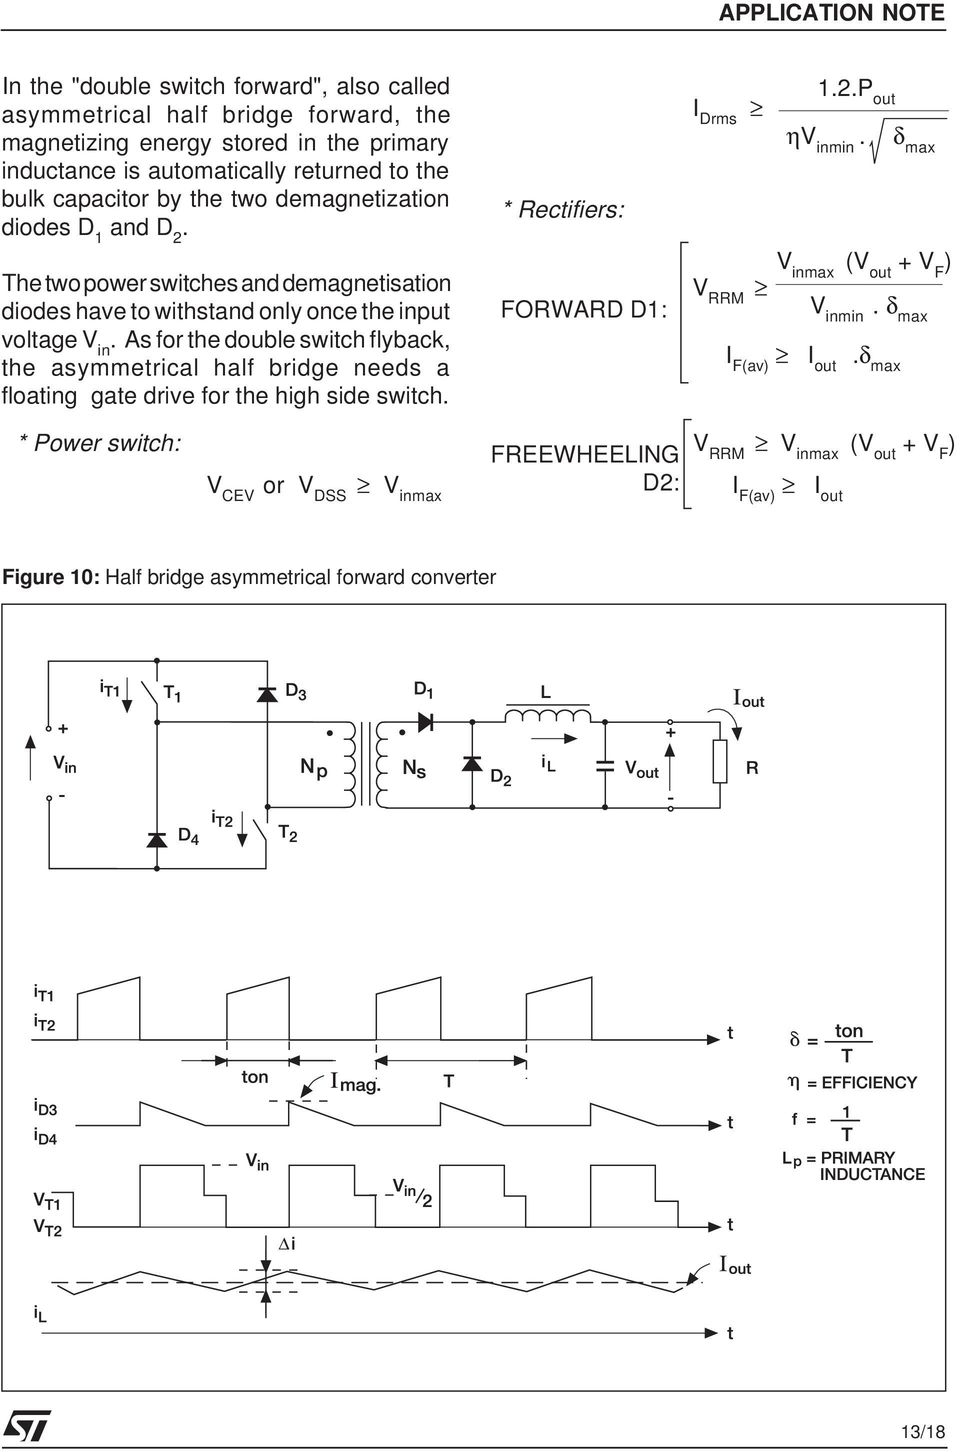 Topologies For Switched Mode Power Supplies Pdf How Can Protect Mosfet Switch In Flyback As The Double Asymmetrical Half Bridge Needs A Floating Gate Drive